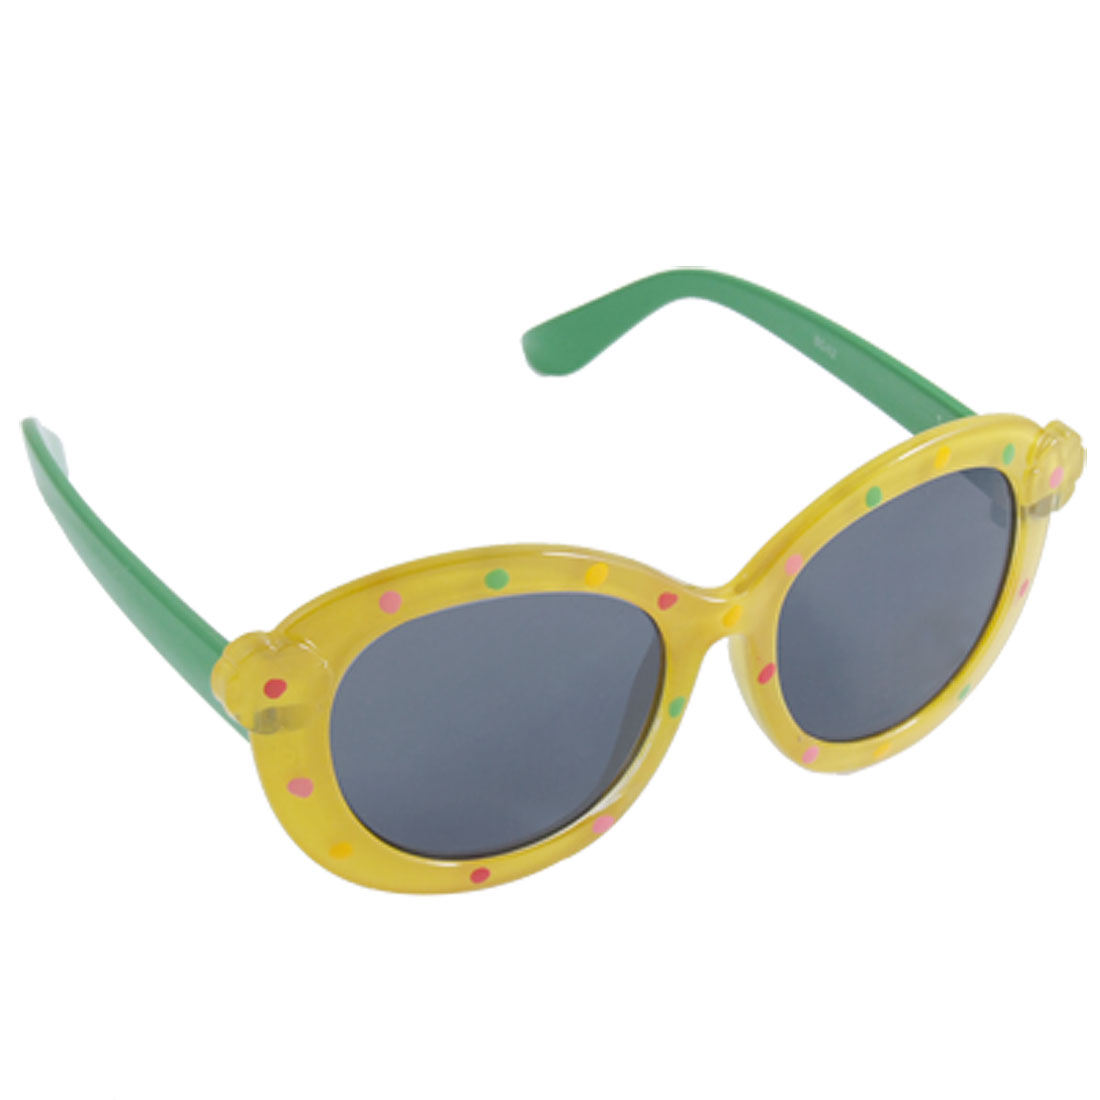 Kids Green Plastic Arms Yellow Full-rim Leisure Sunglasses